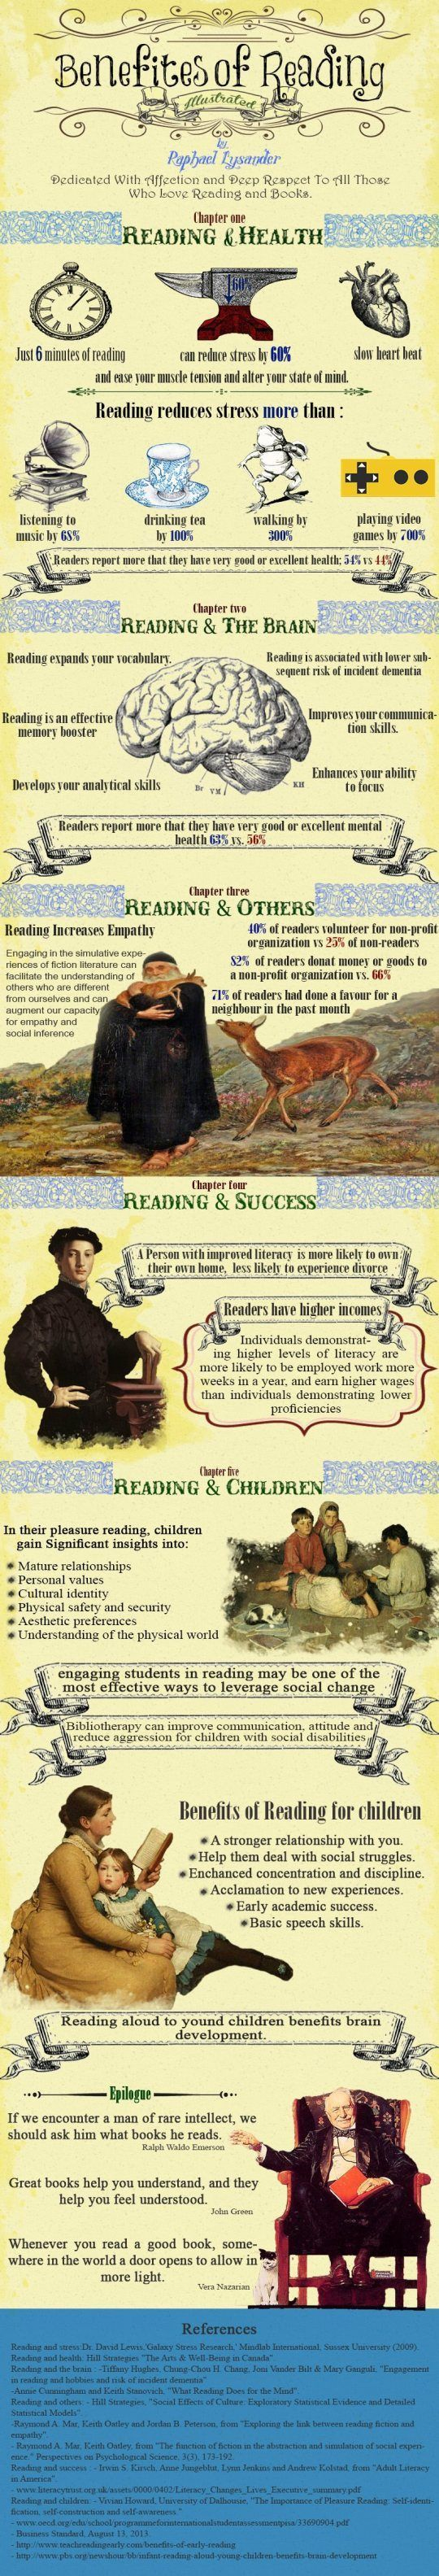 Reading makes us better infographic